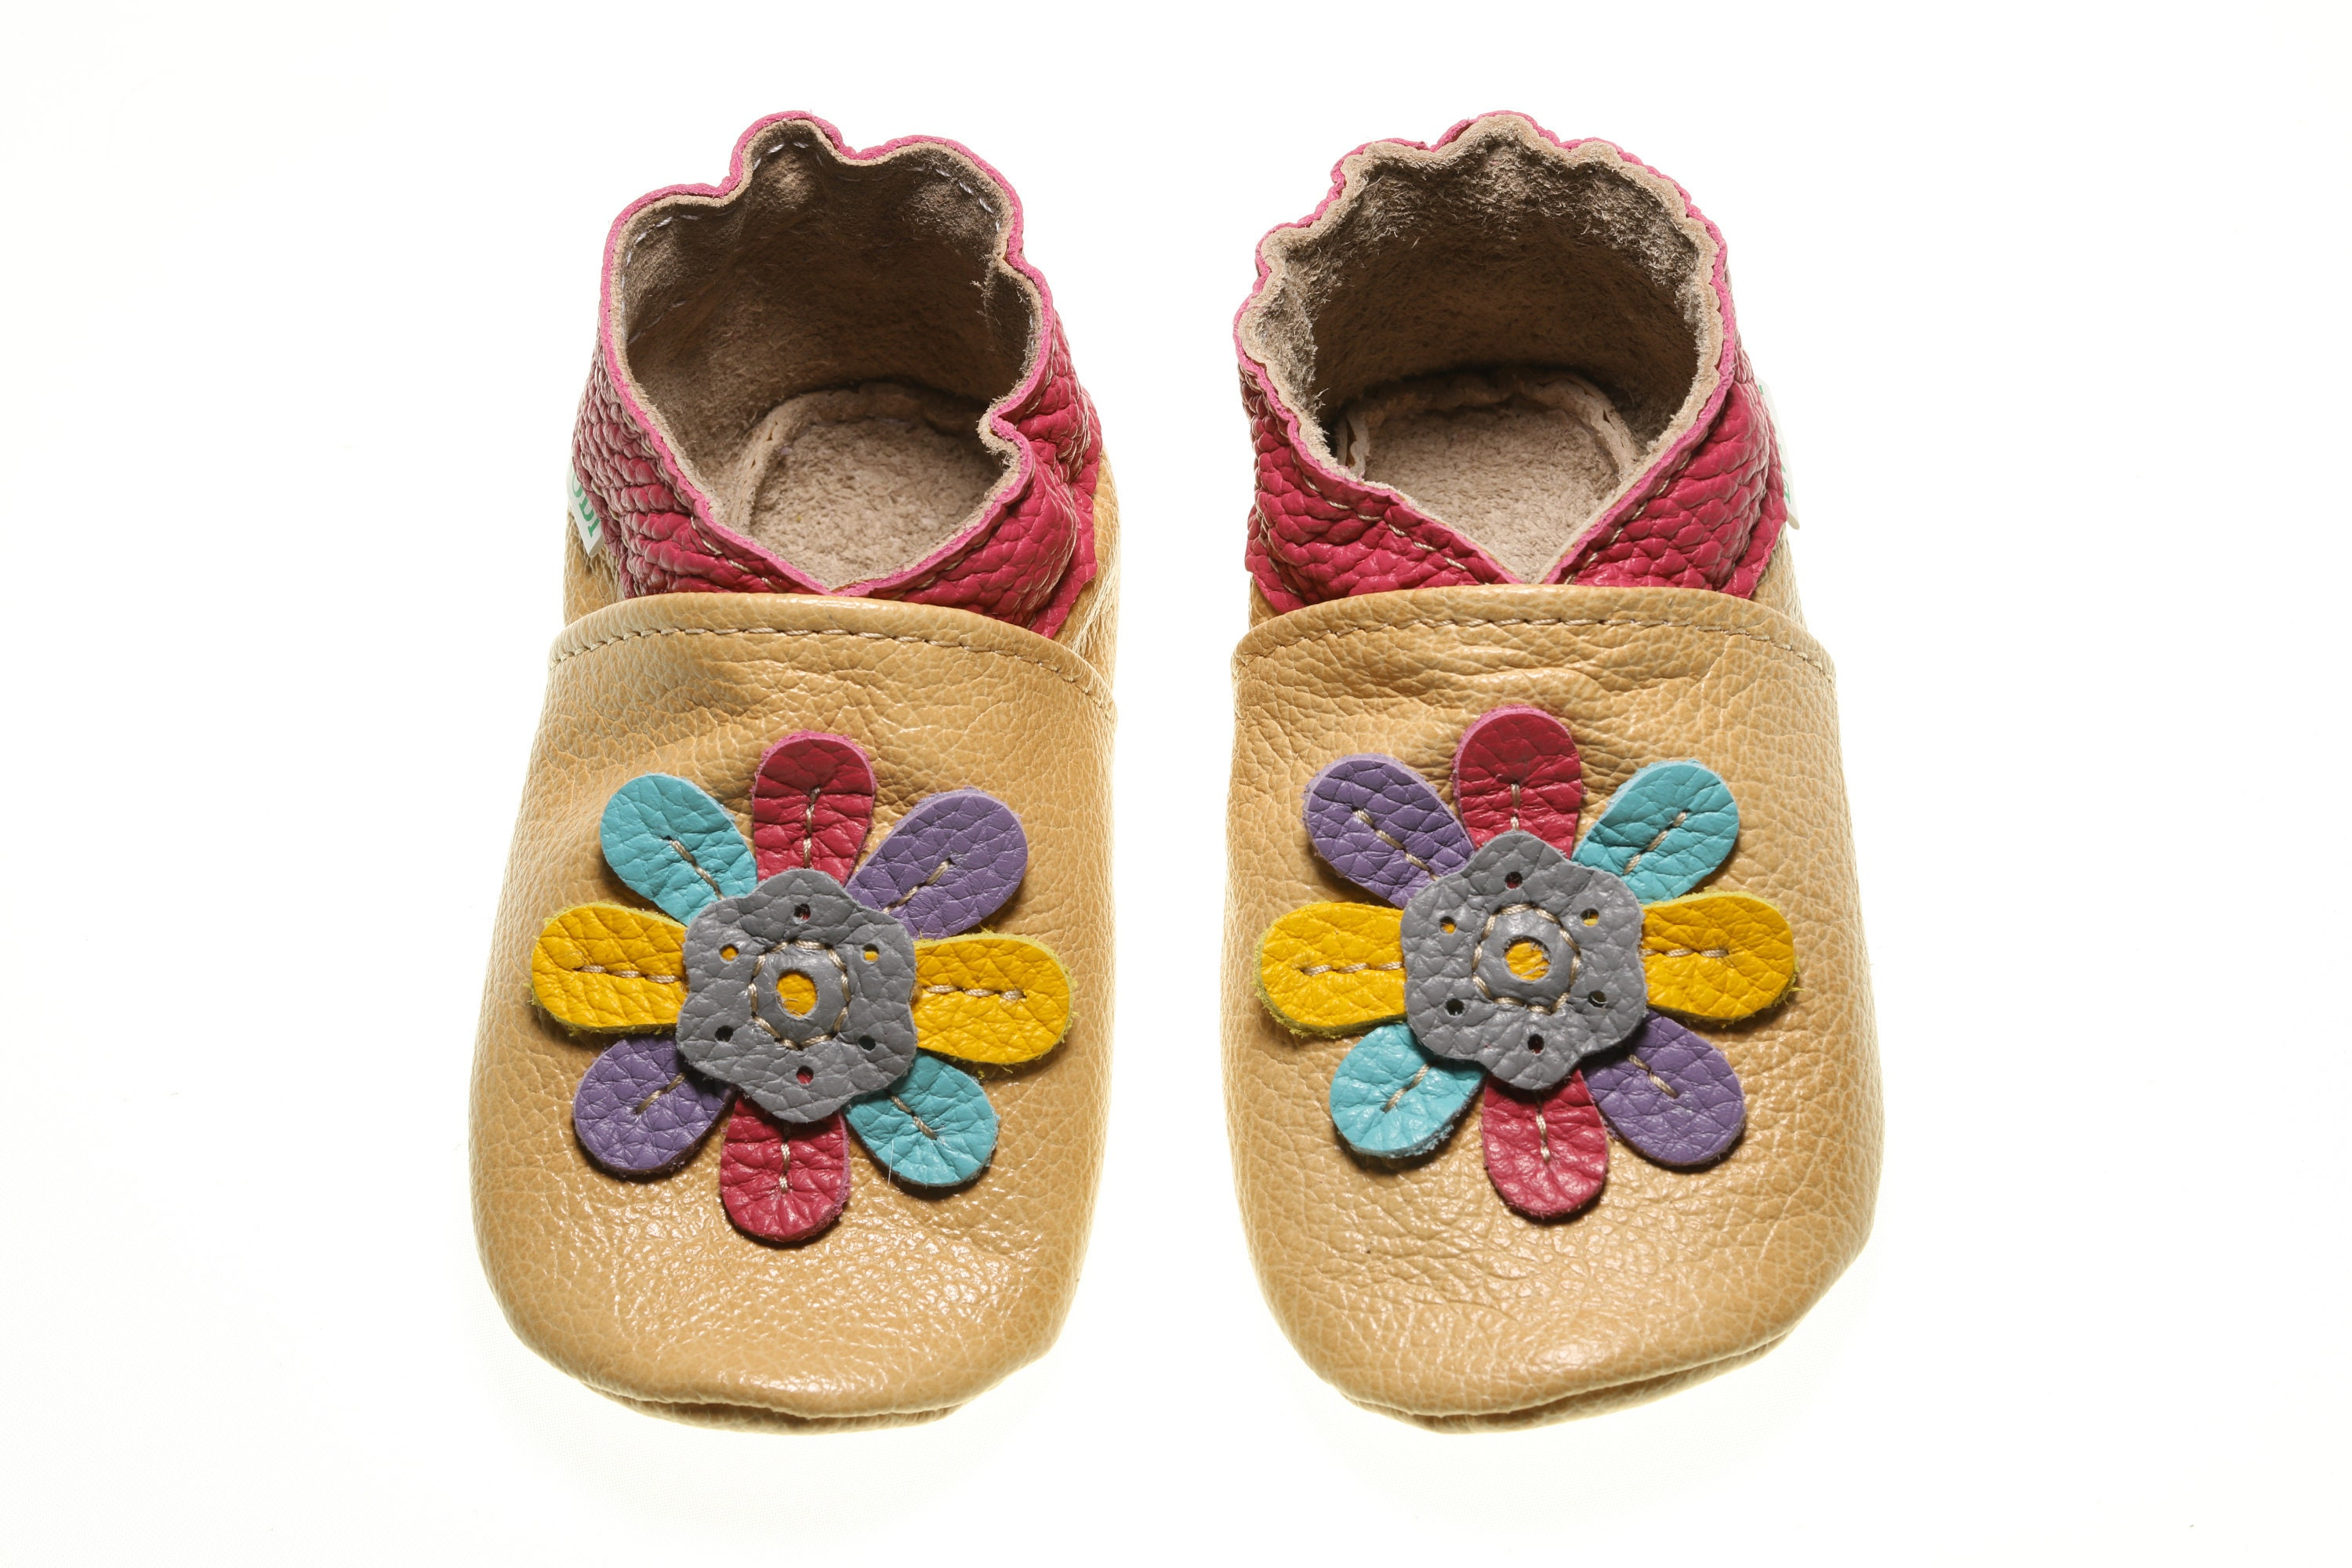 5bbb2578799ec Leather Baby Shoes, Soft Sole Baby Shoes, Baby Moccasins, Infant Shoes,  Toddler Slippers, Crib Shoes, Rainbow Flower, Shower Gifts, Evtodi